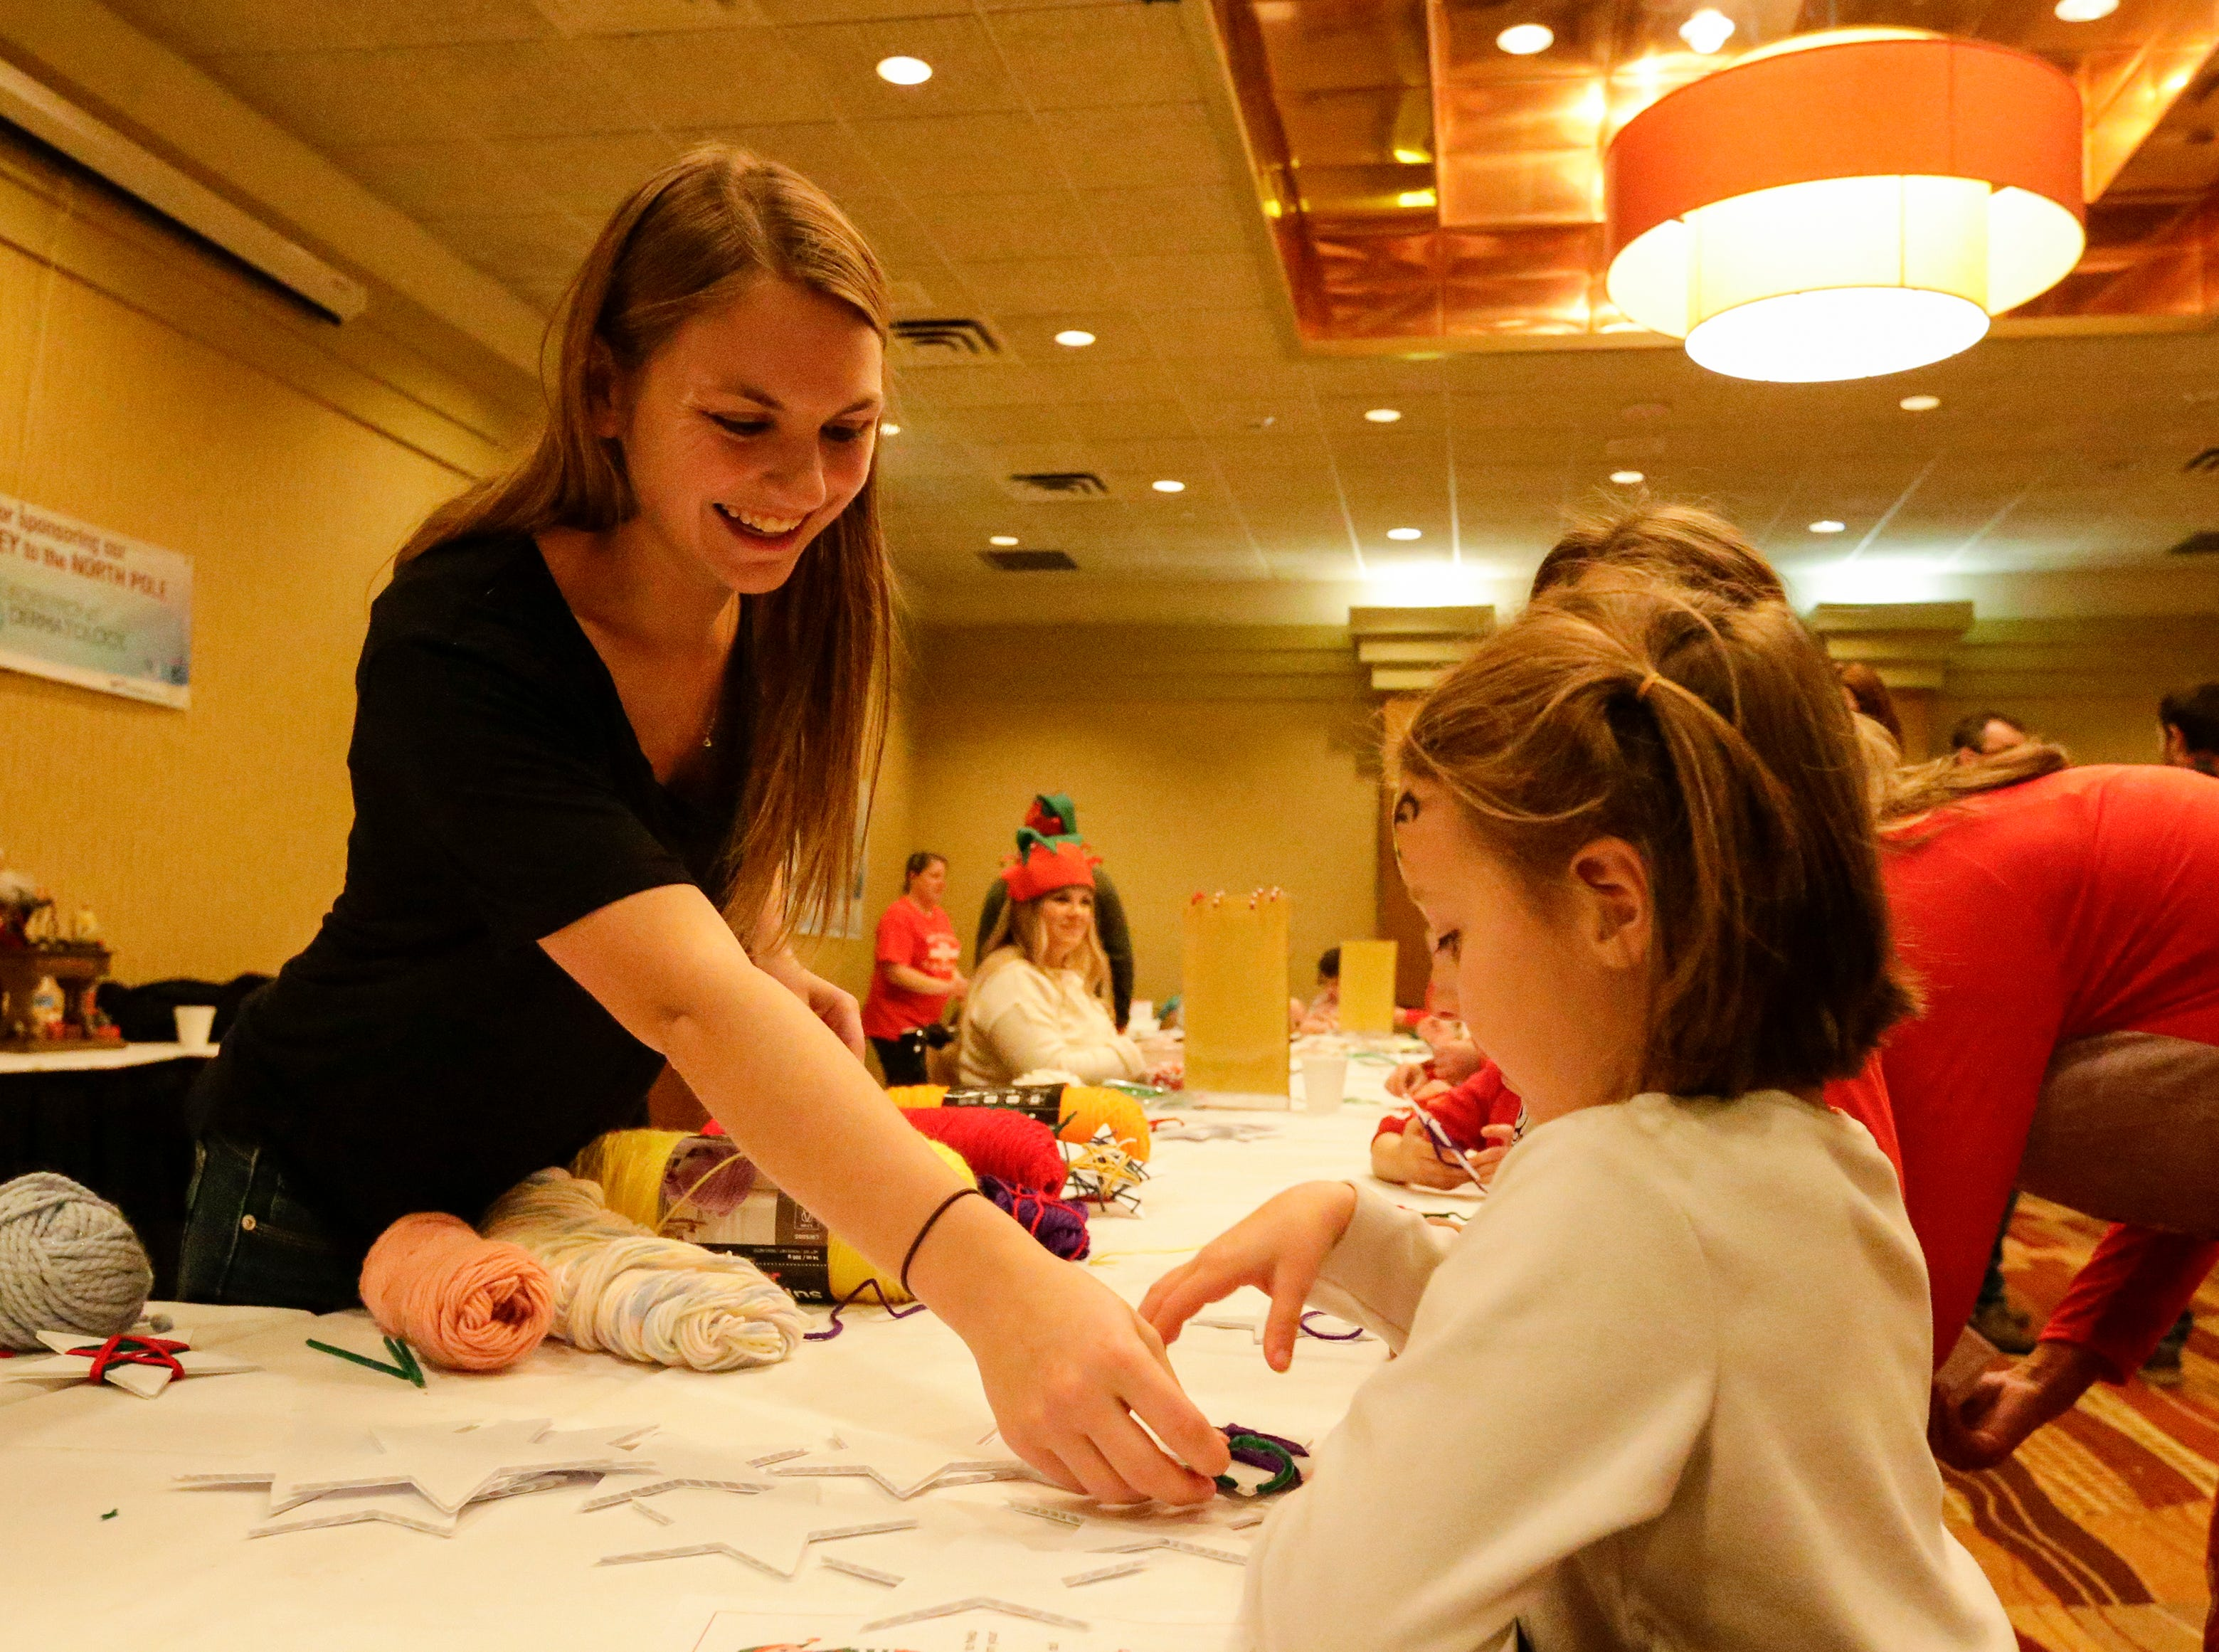 The arts and crafts table at Santa's North Pole at the Holiday Inn Saturday, December 8, 2018, in Manitowoc, Wis. Joshua Clark/USA TODAY NETWORK-Wisconsin